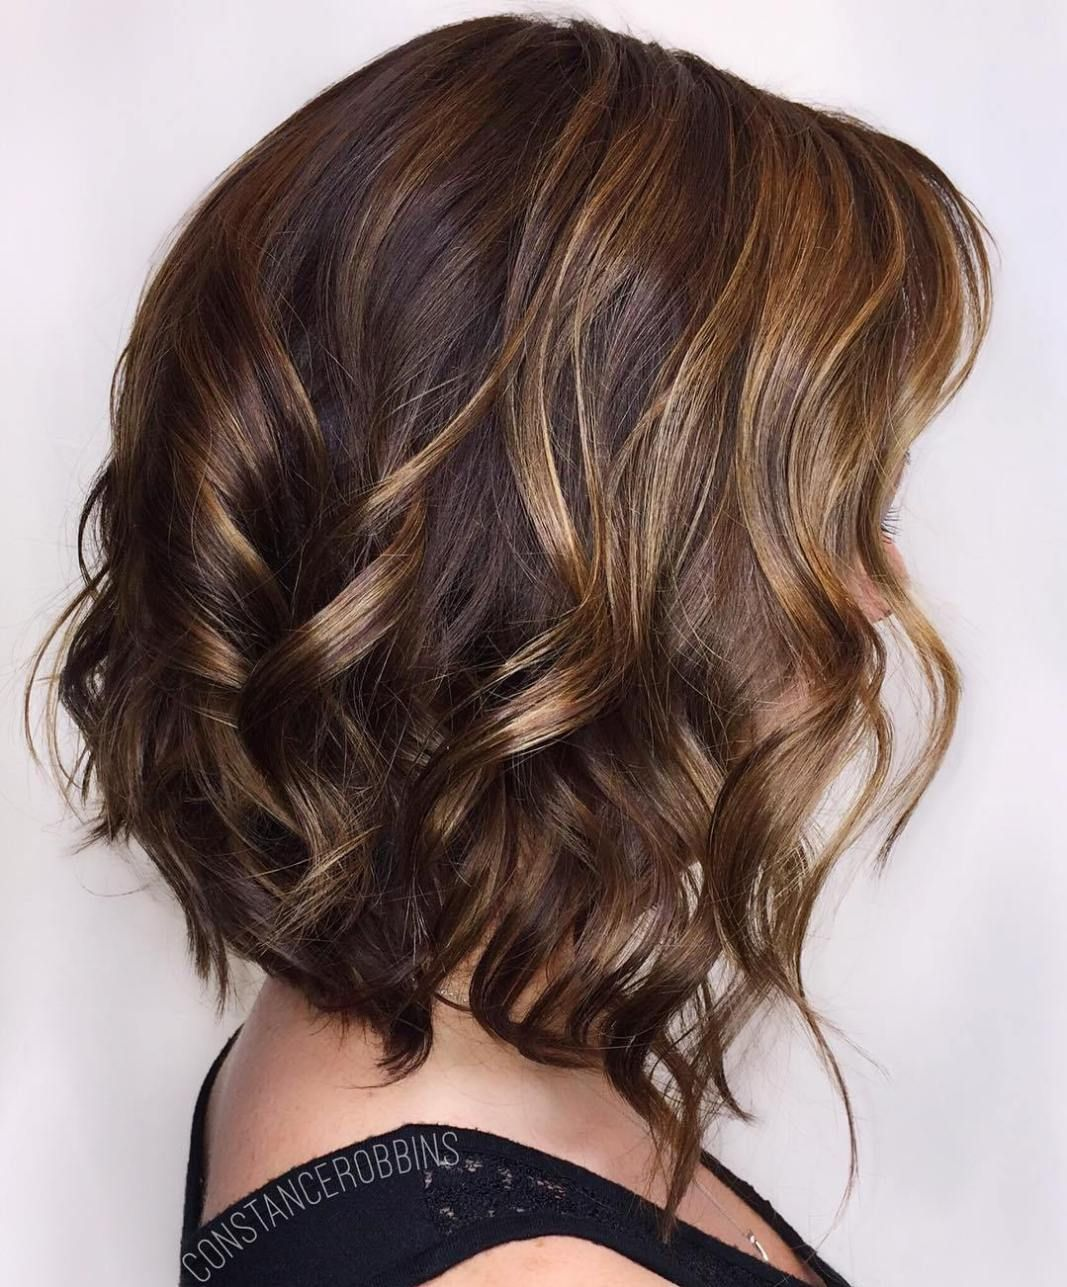 45 Ideas For Light Brown Hair With Highlights And Lowlights Light